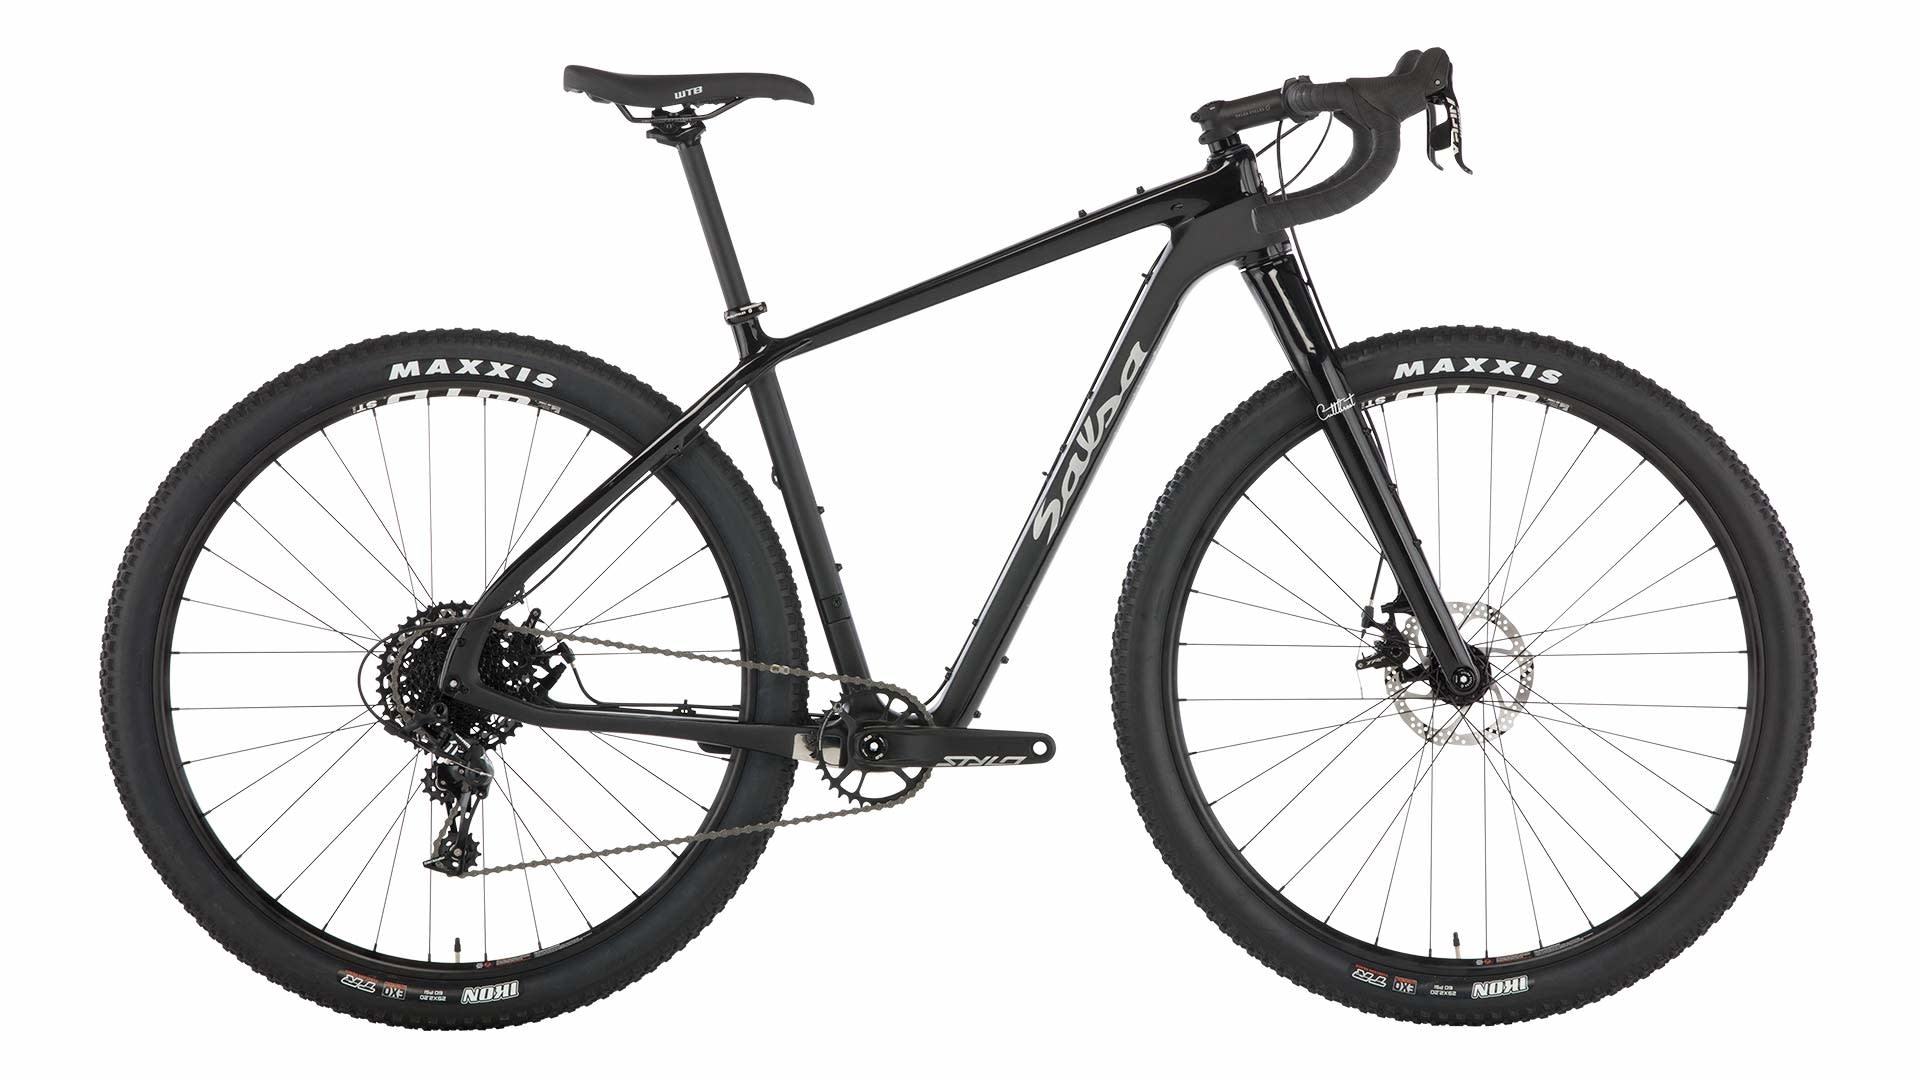 Salsa Salsa Cutthroat Apex 1 Bike Black on Black 2019